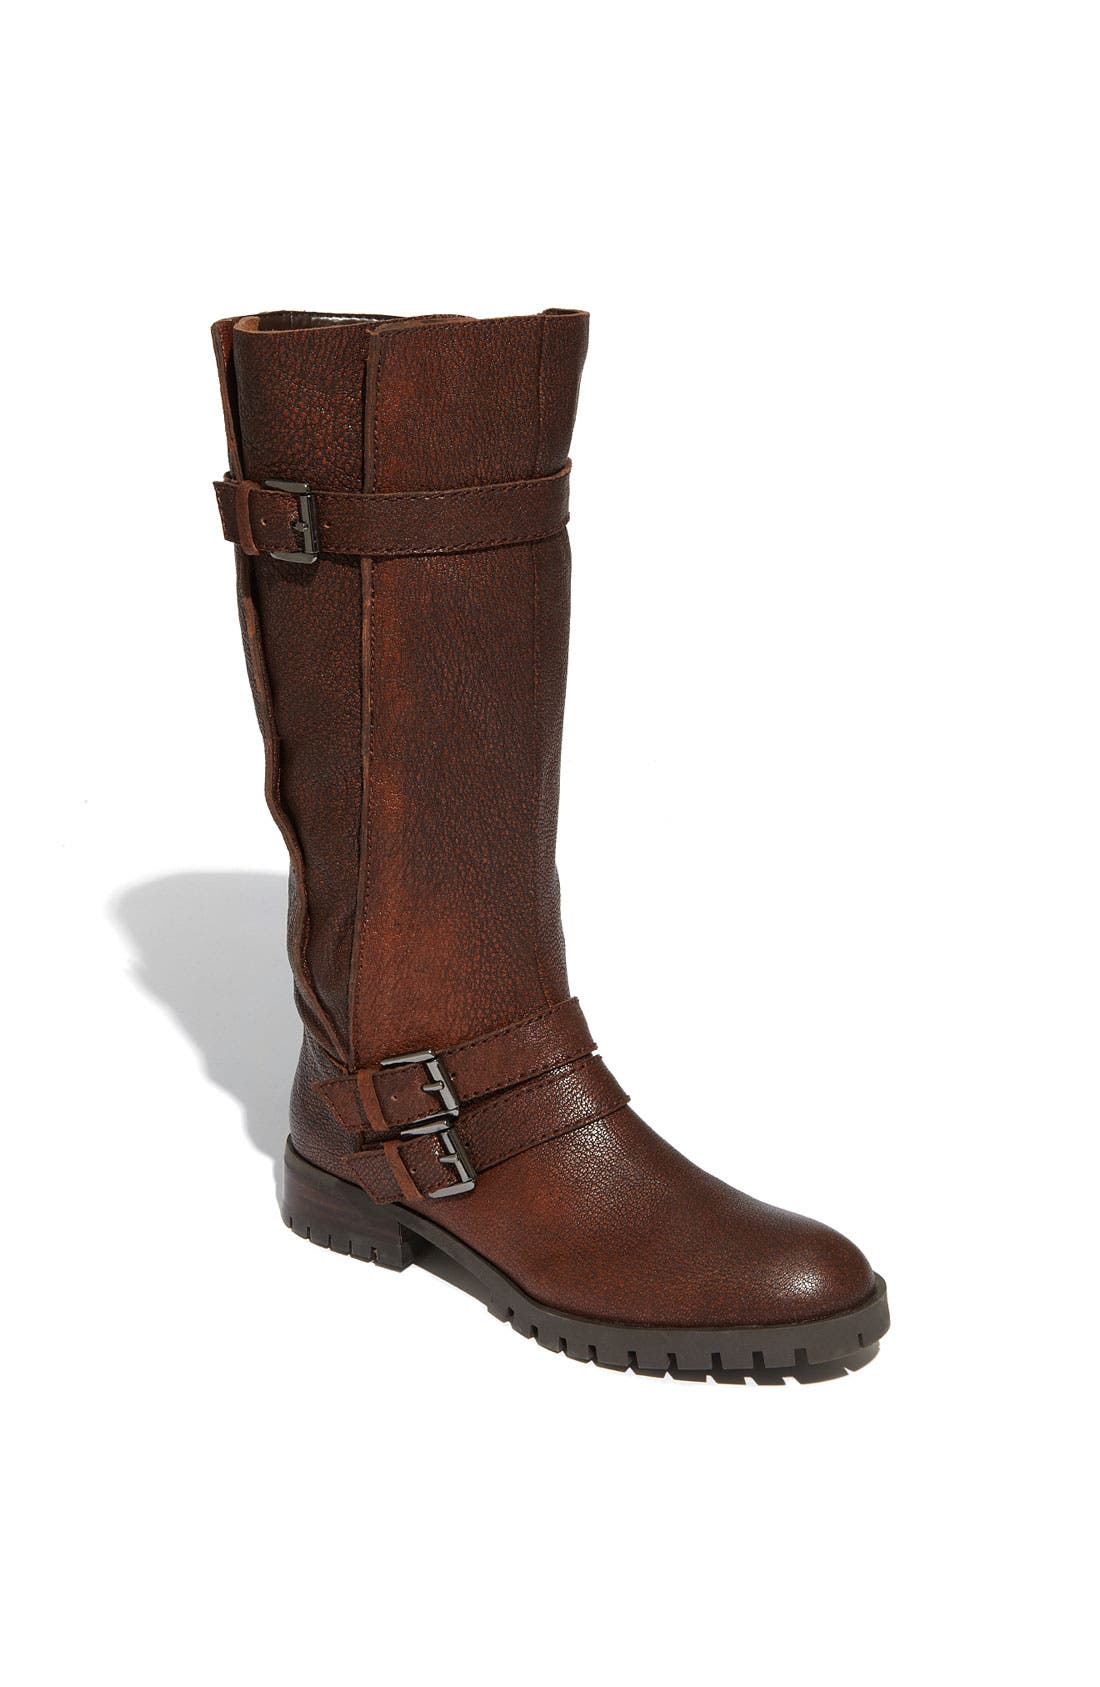 Alternate Image 1 Selected - Enzo Angiolini 'Sten' Mid Calf Boot